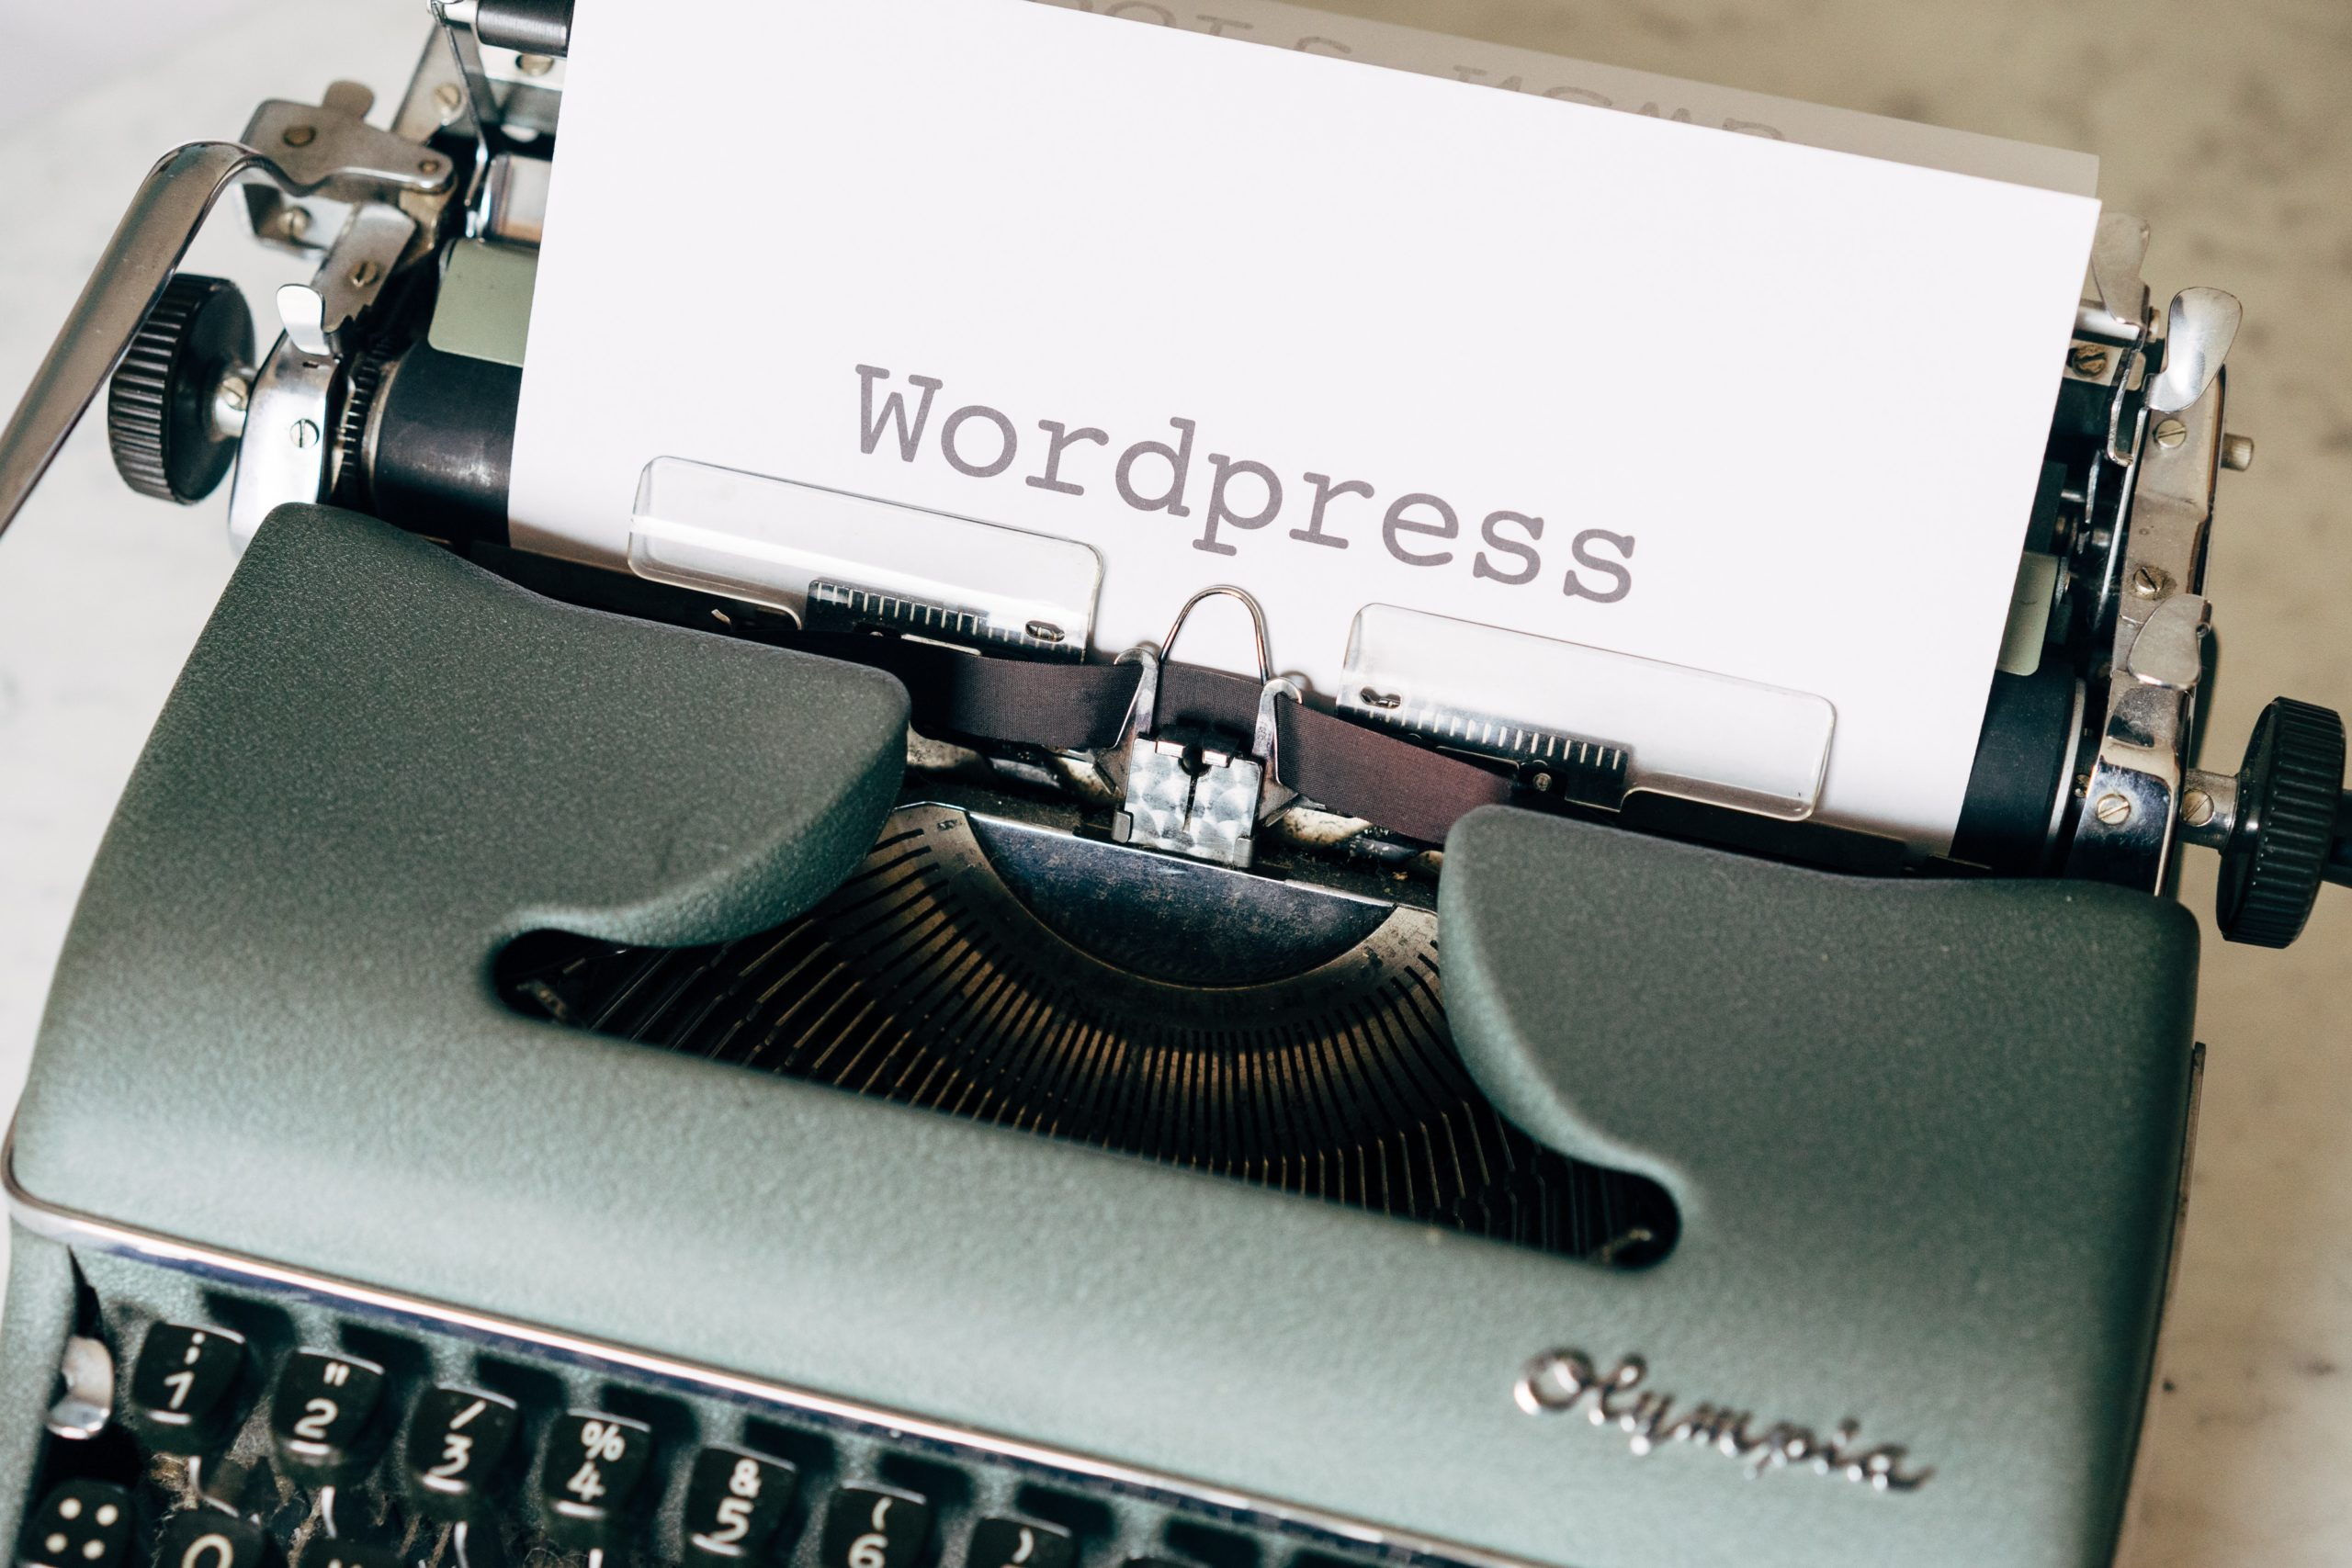 A typewriter with a sheet of paper in it, upon which is the word WordPress.